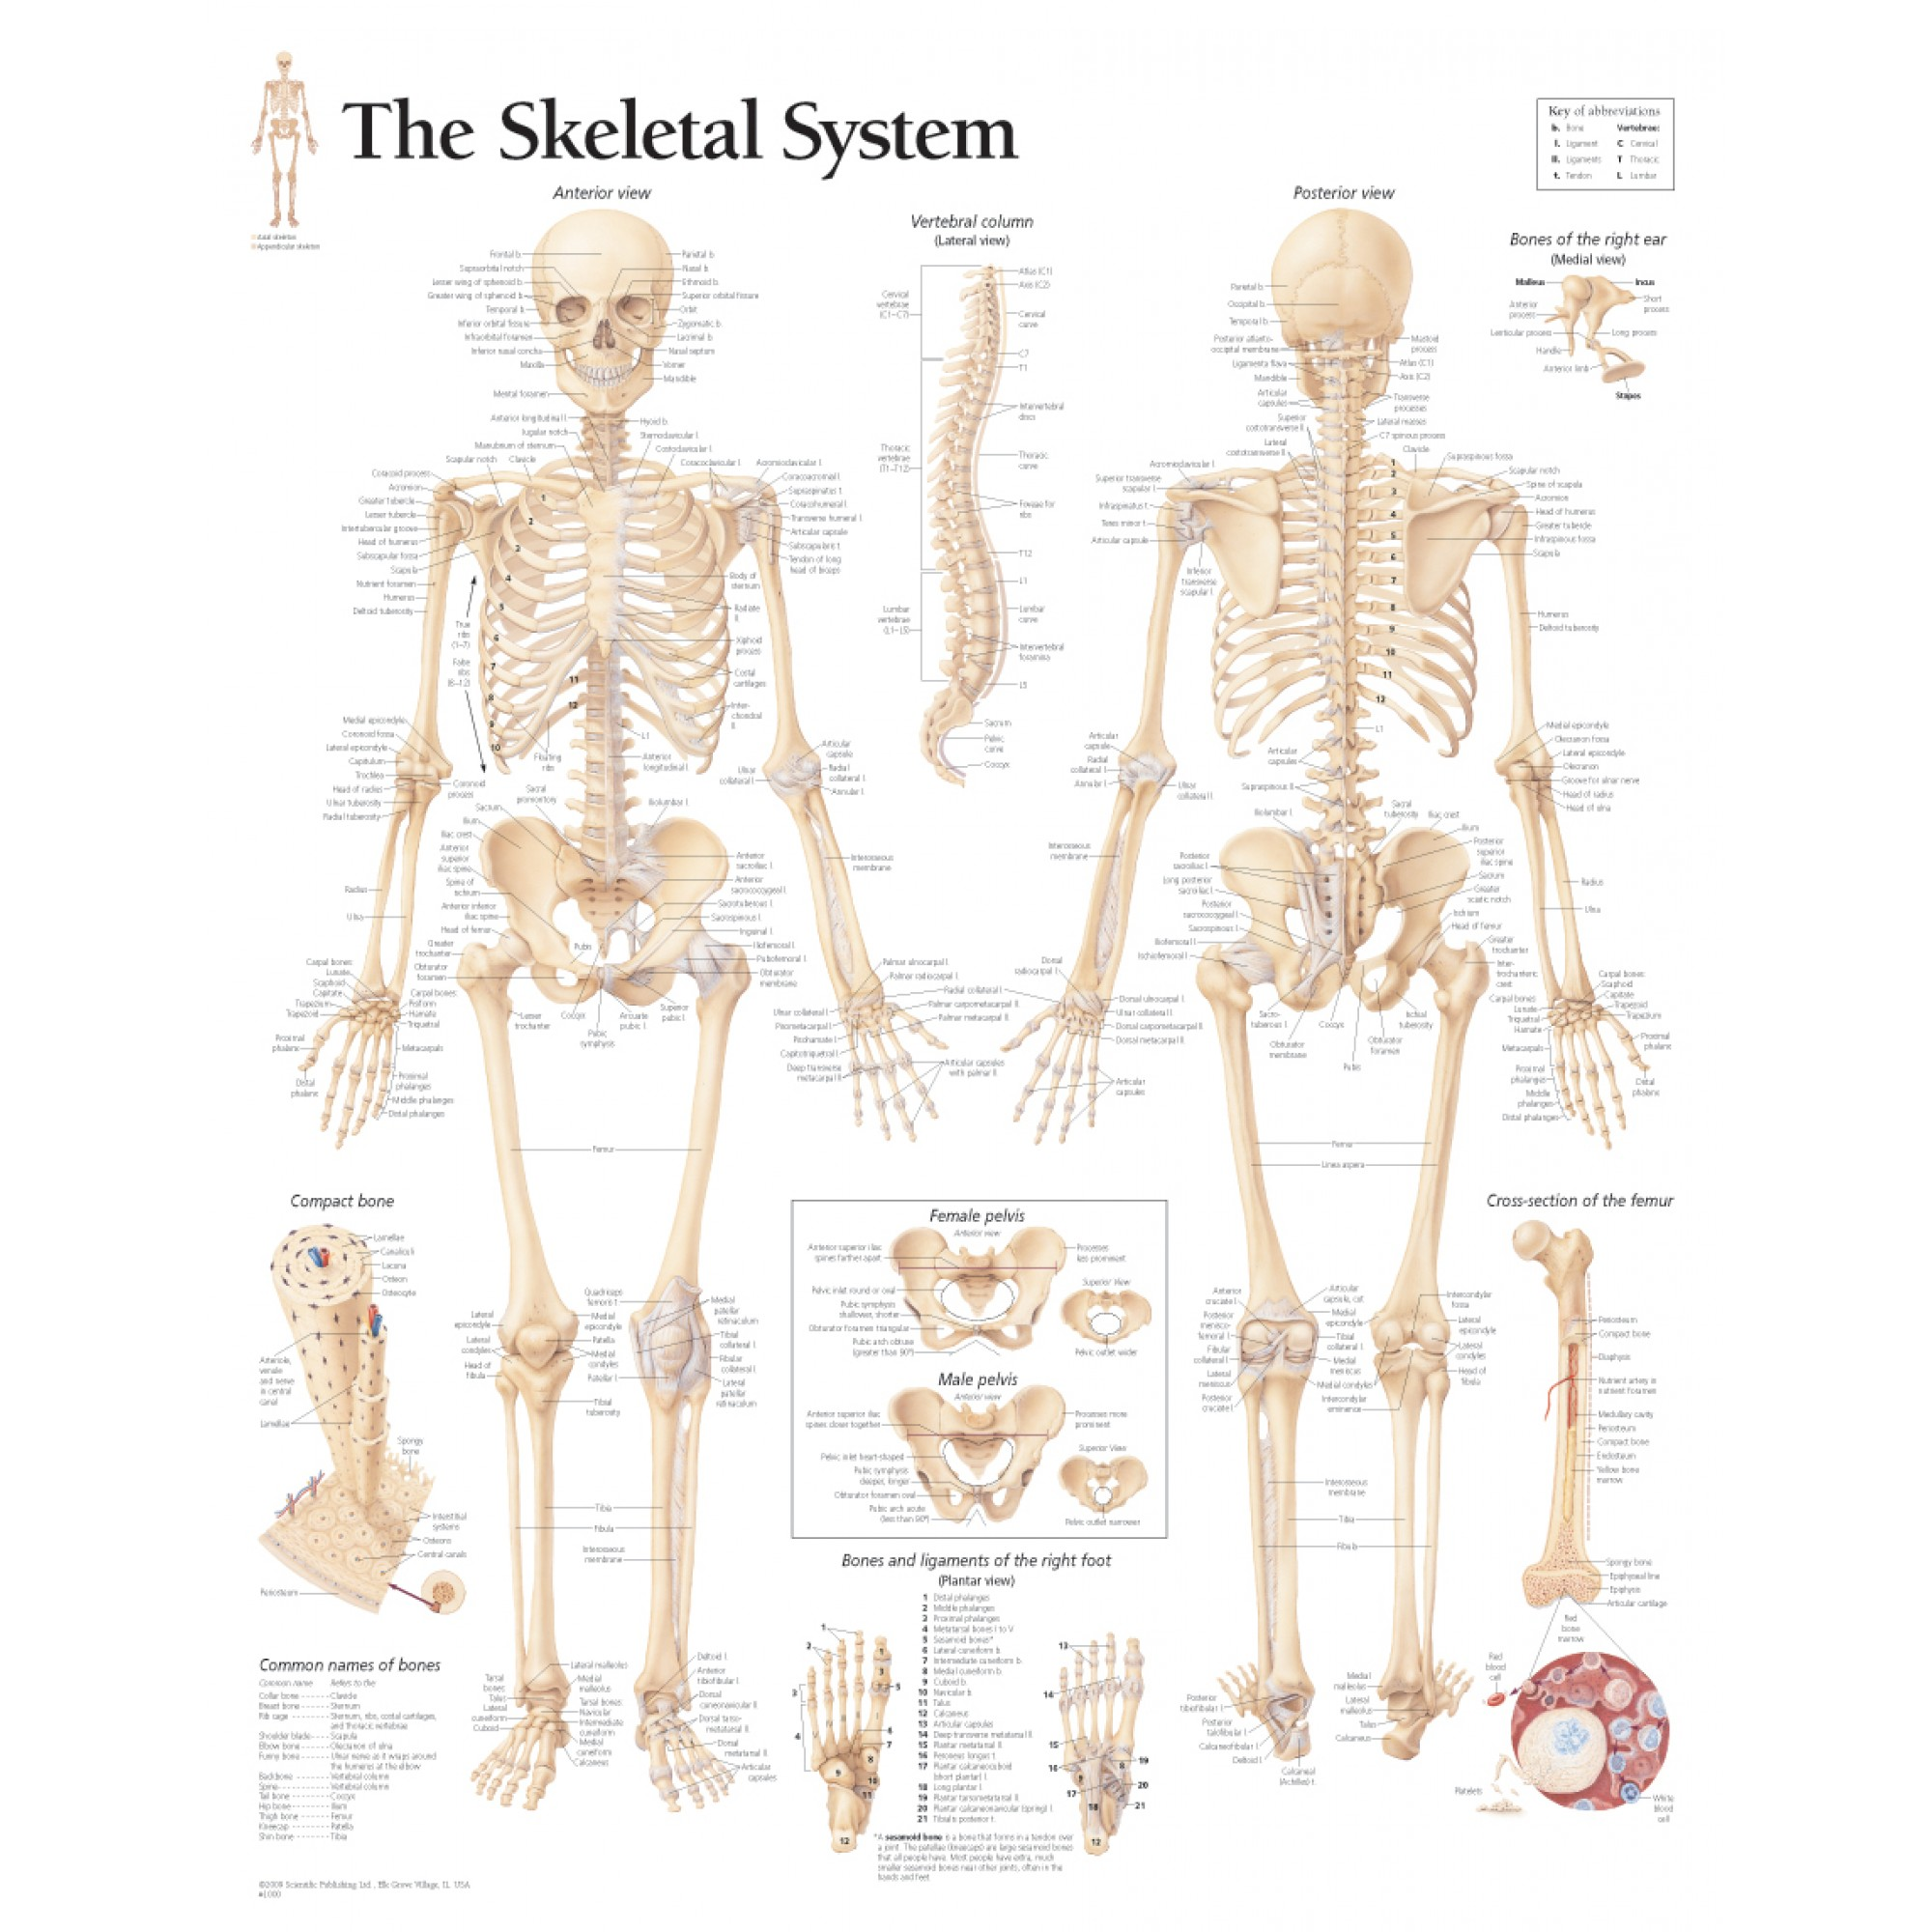 Das Skelettsystem Anatomie | Health Life Media